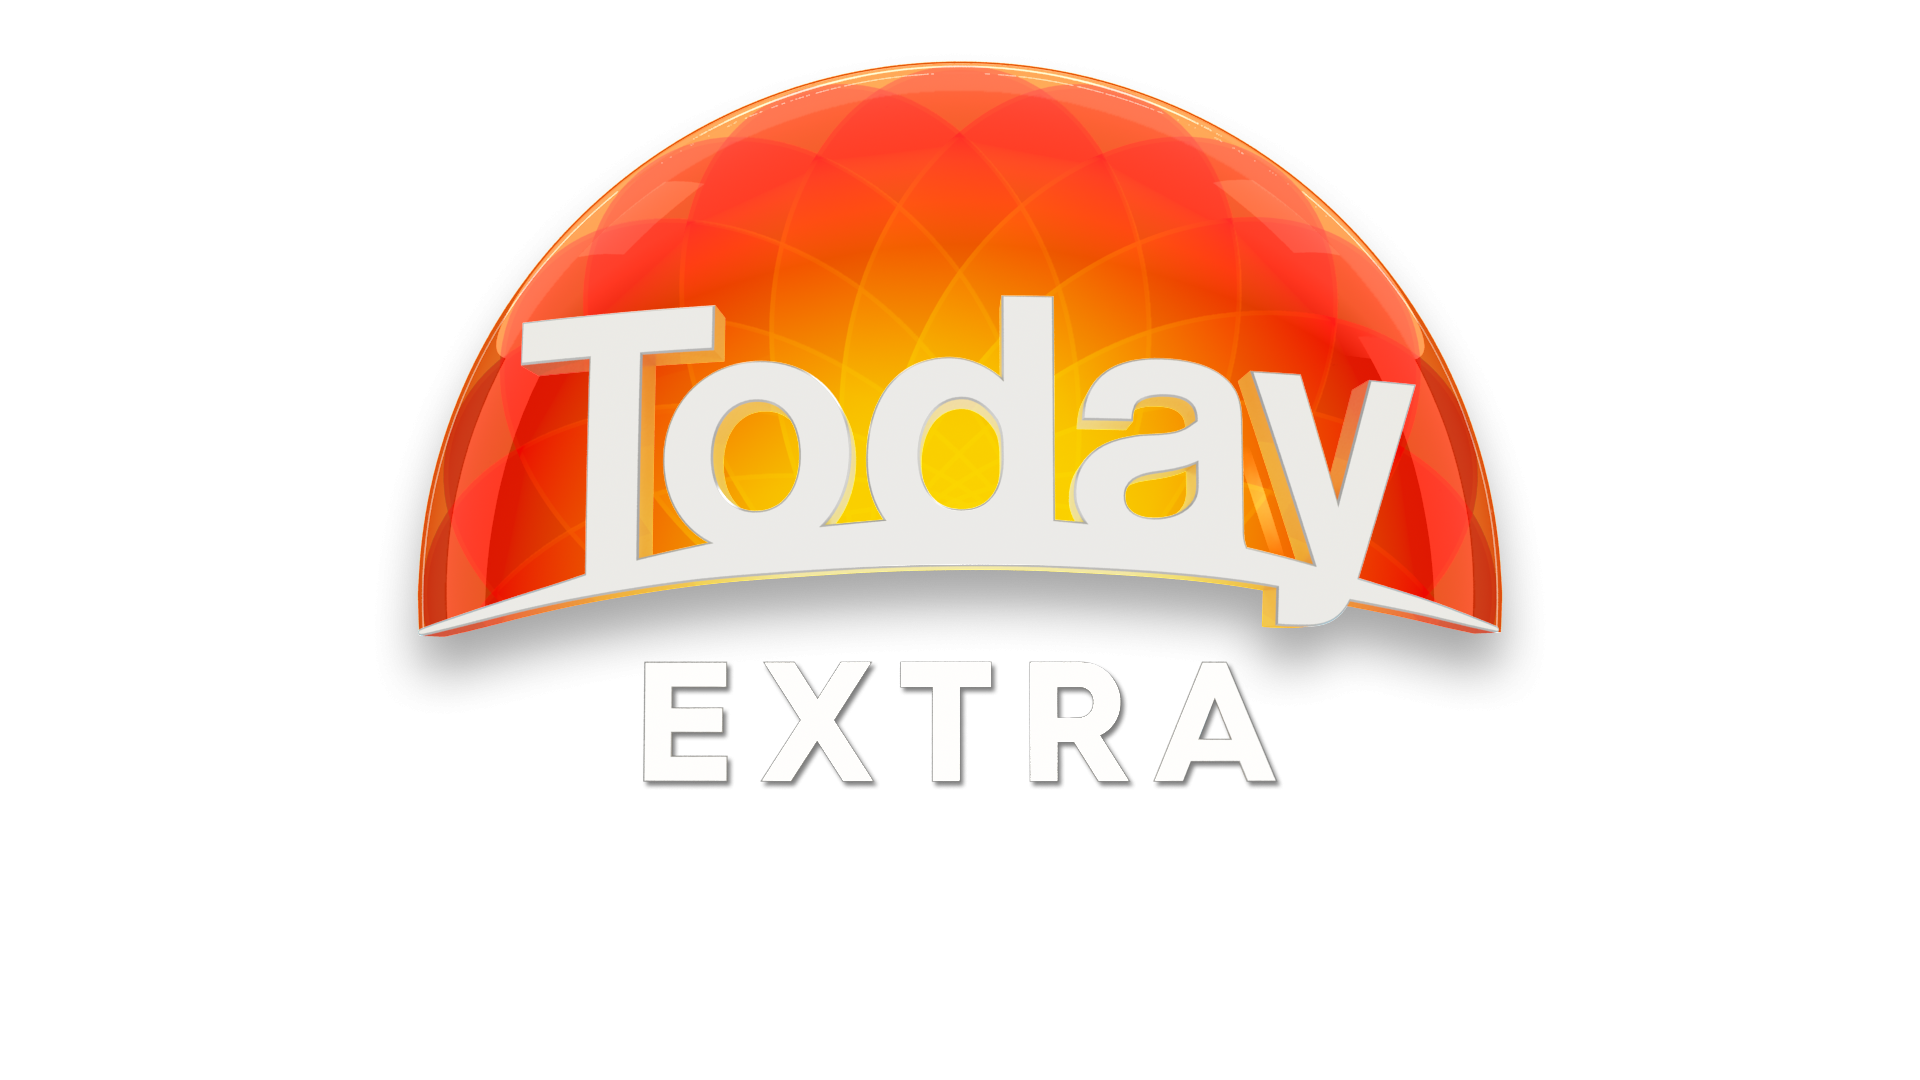 The Today Extra learns how easy it is to use Avery WePrint